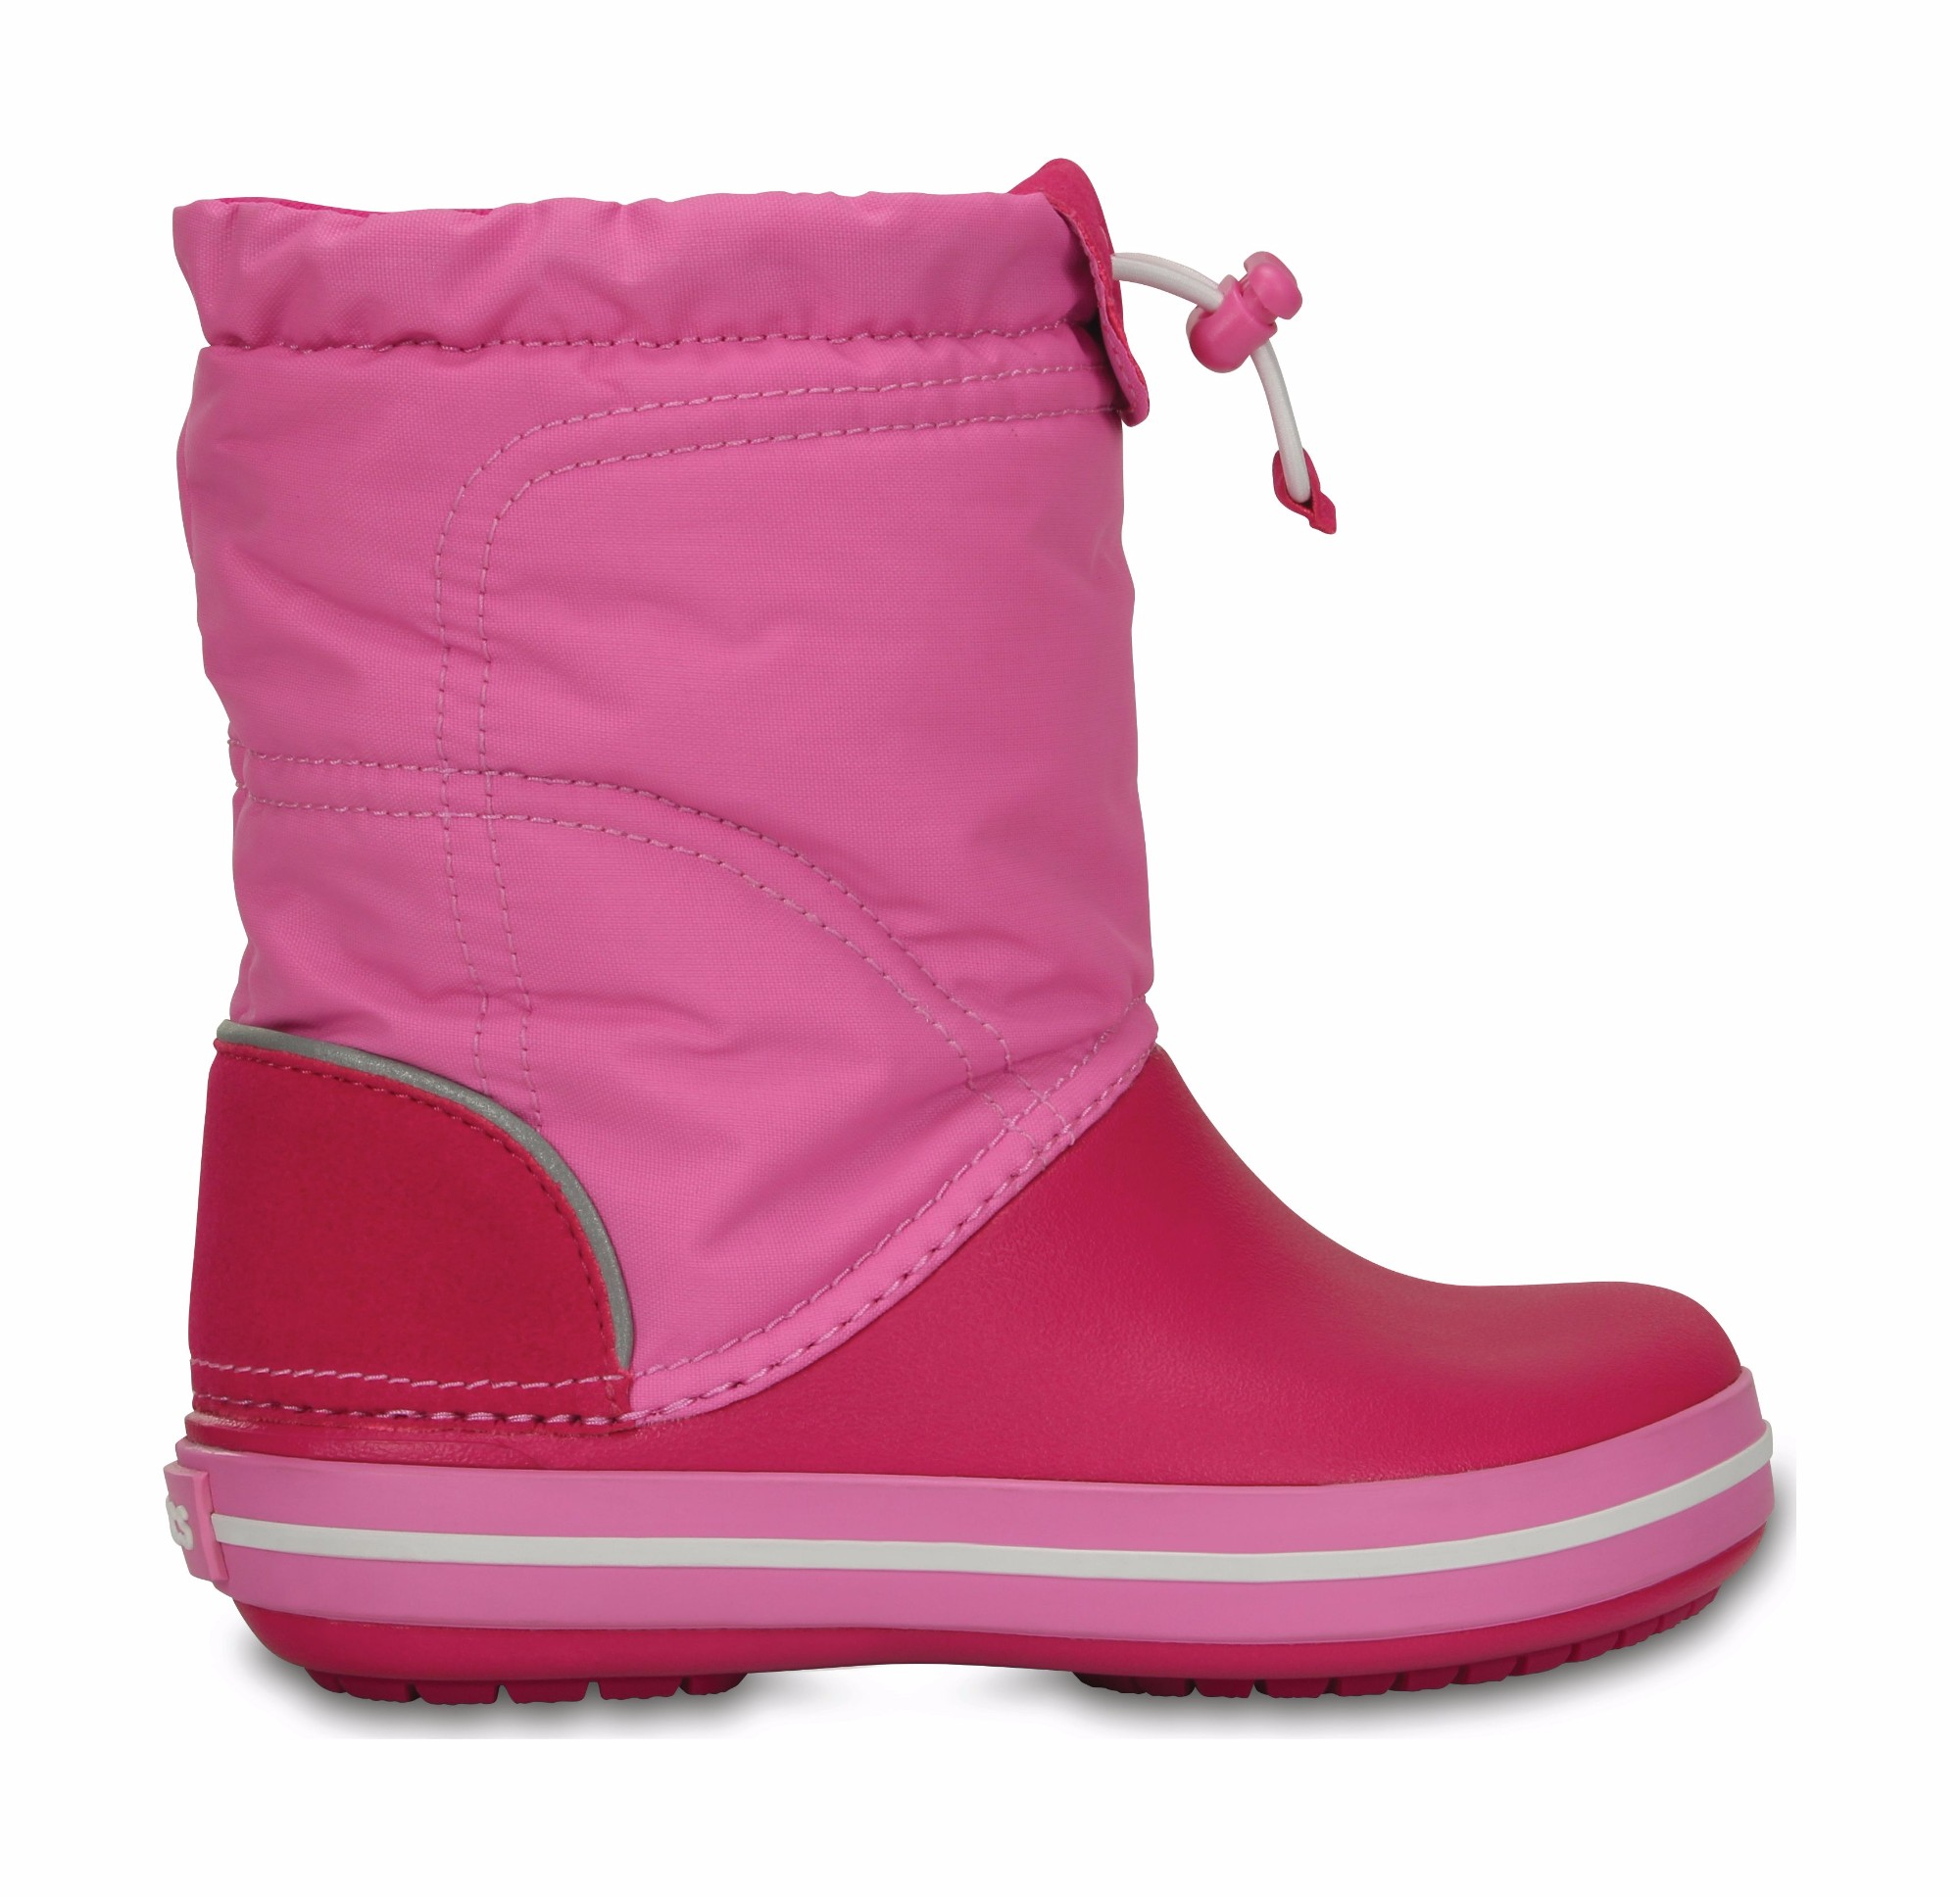 Crocs™ Kids' Crocband Lodgepoint Boot Candy Pink/Party Pink 26